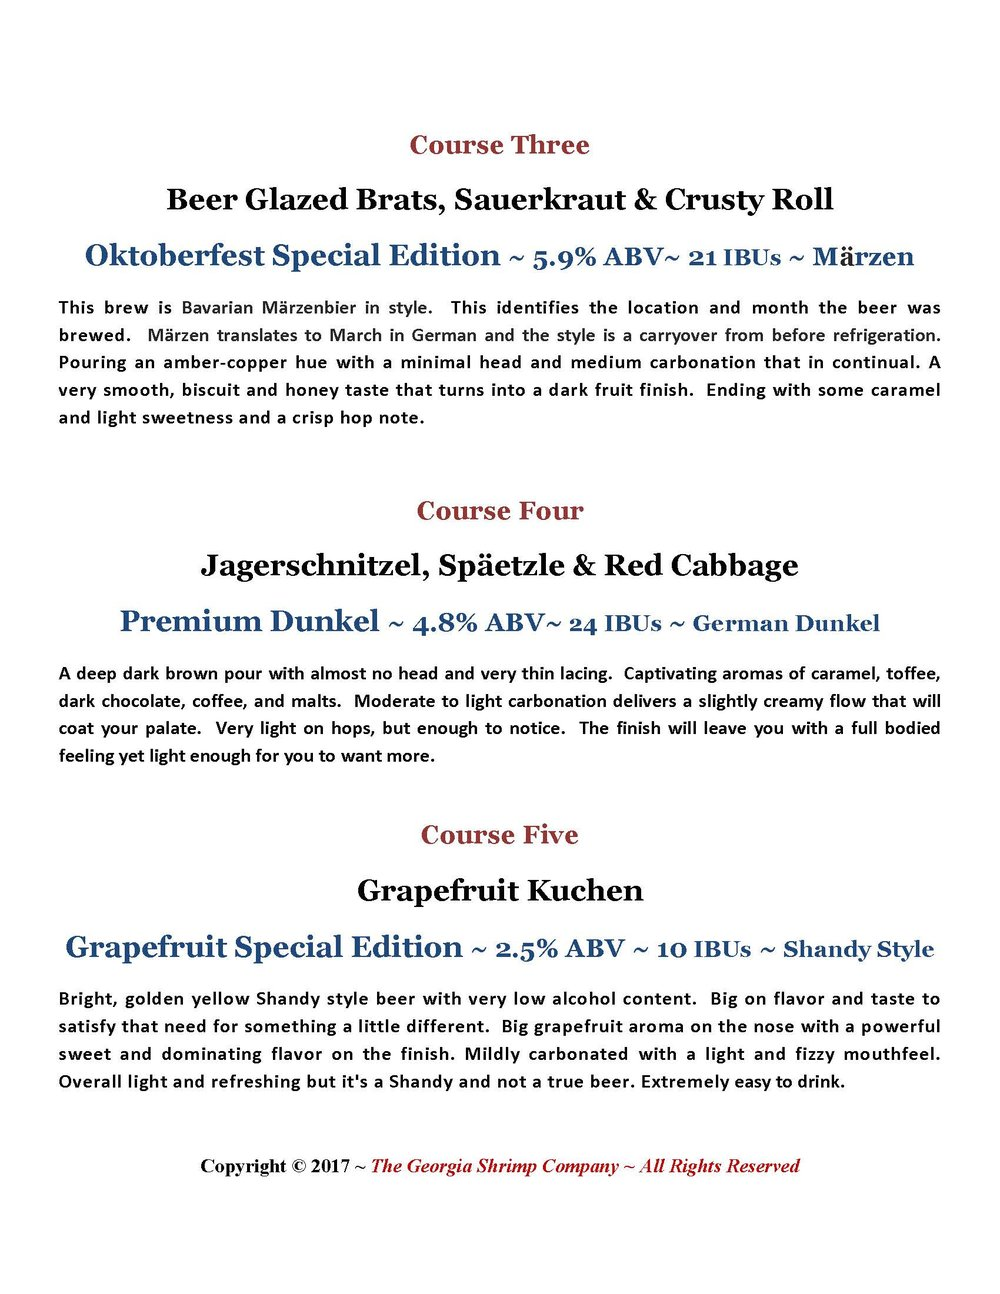 GAS+September Beer Dinner Menu  Pairings & Beer Descriptions-090617_Page_2.jpg